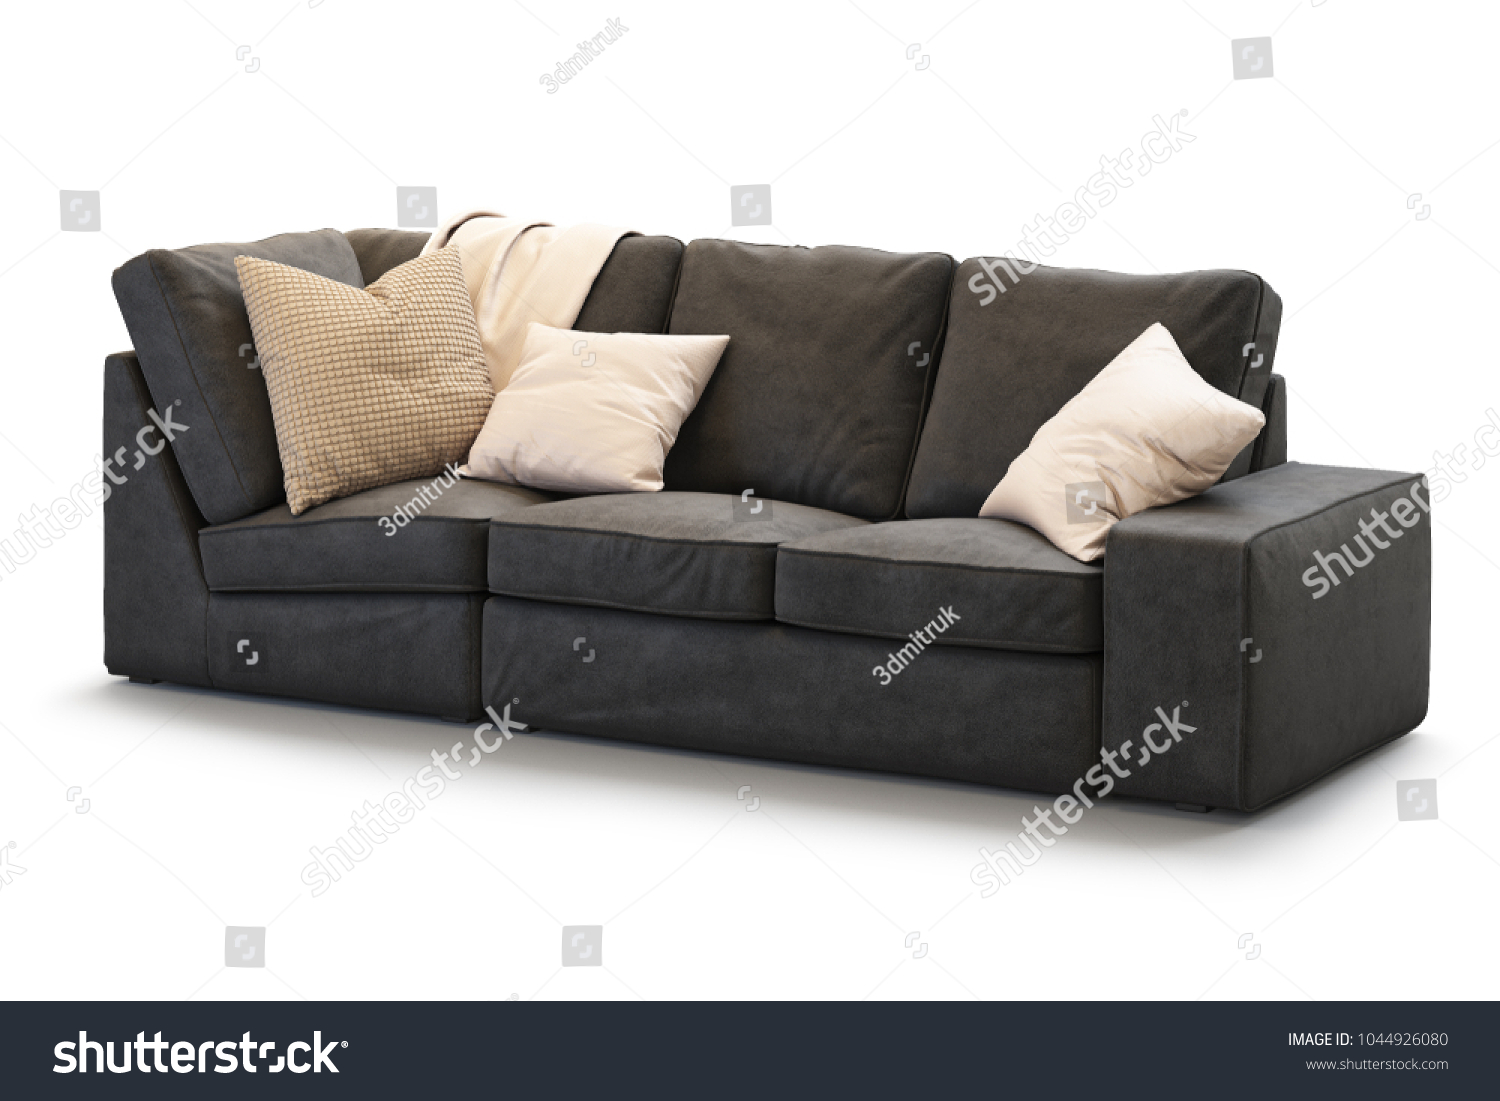 Ikea Kivik Sofa Modern Textile Ikea Kivik Sofa Gold Stock Illustration Royalty